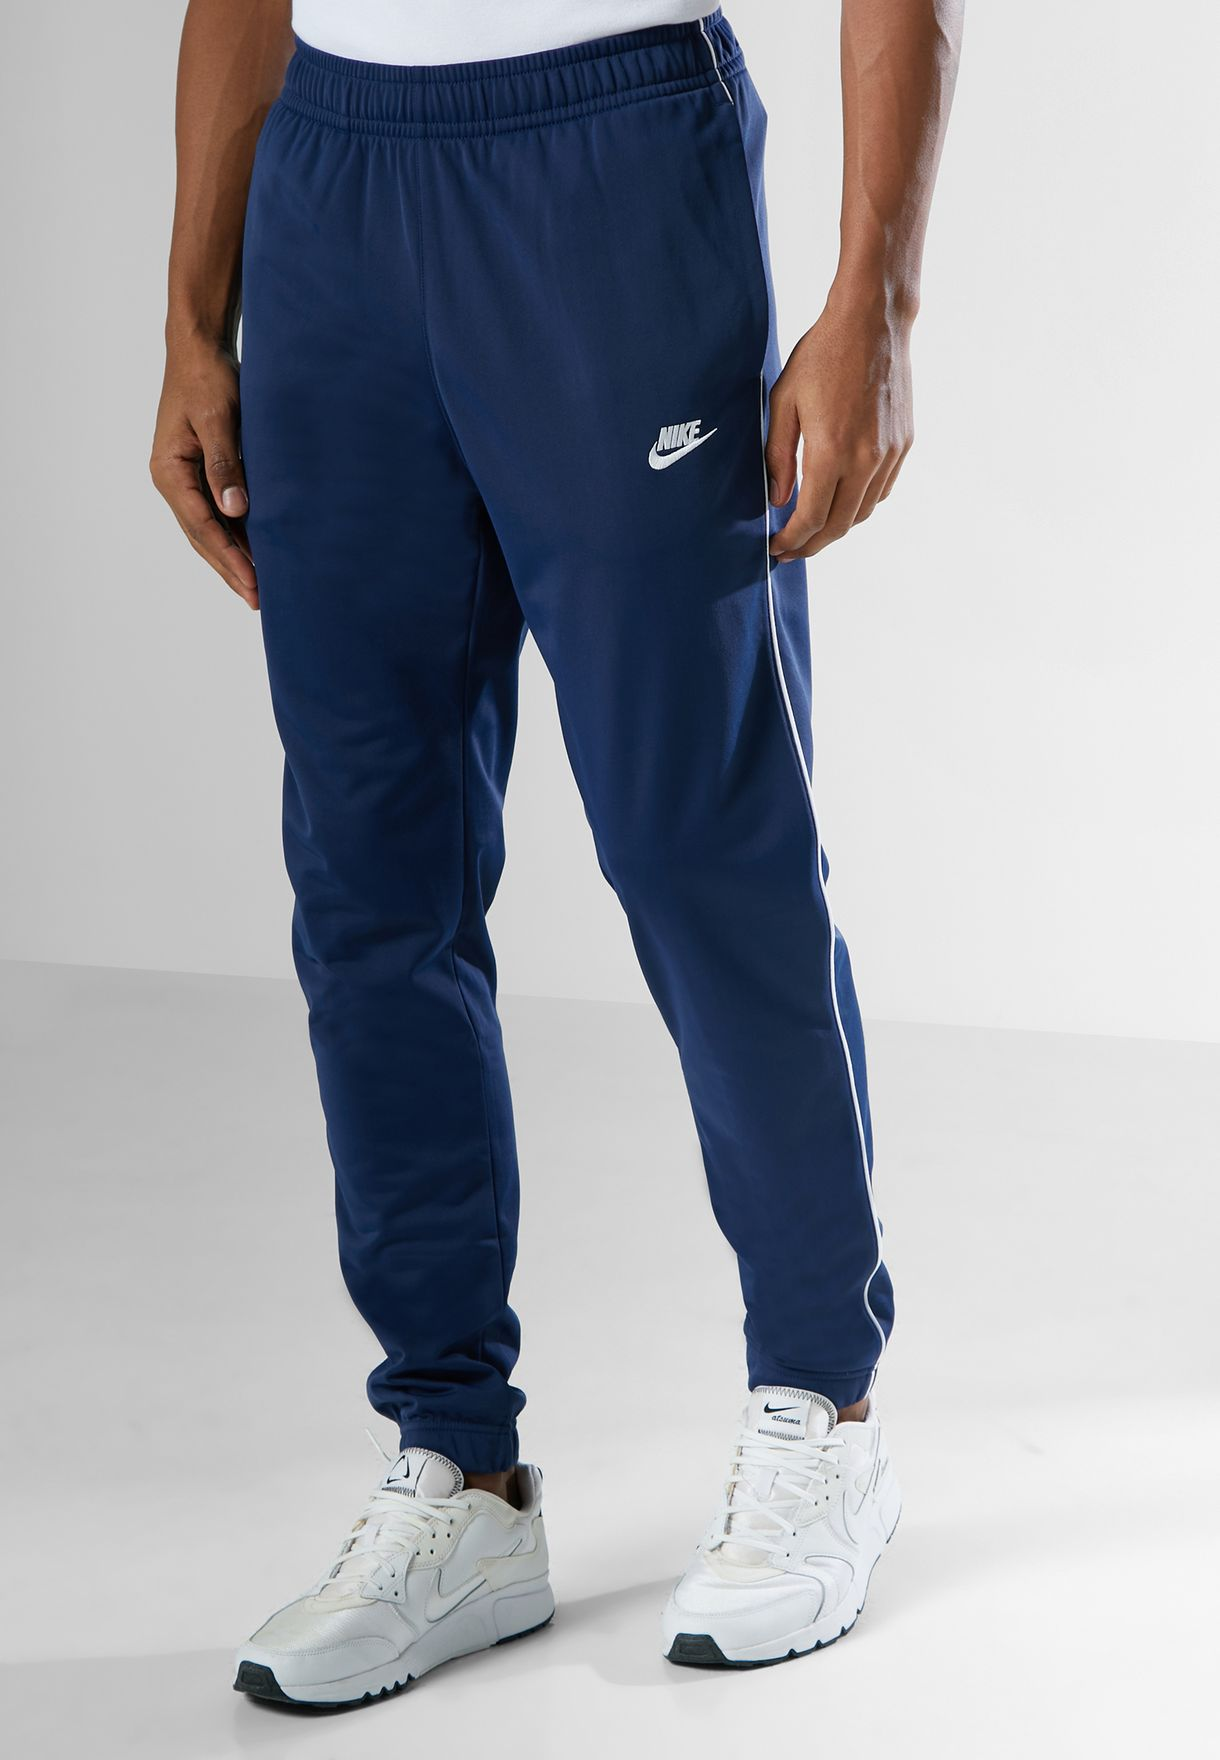 NSW Tracksuit